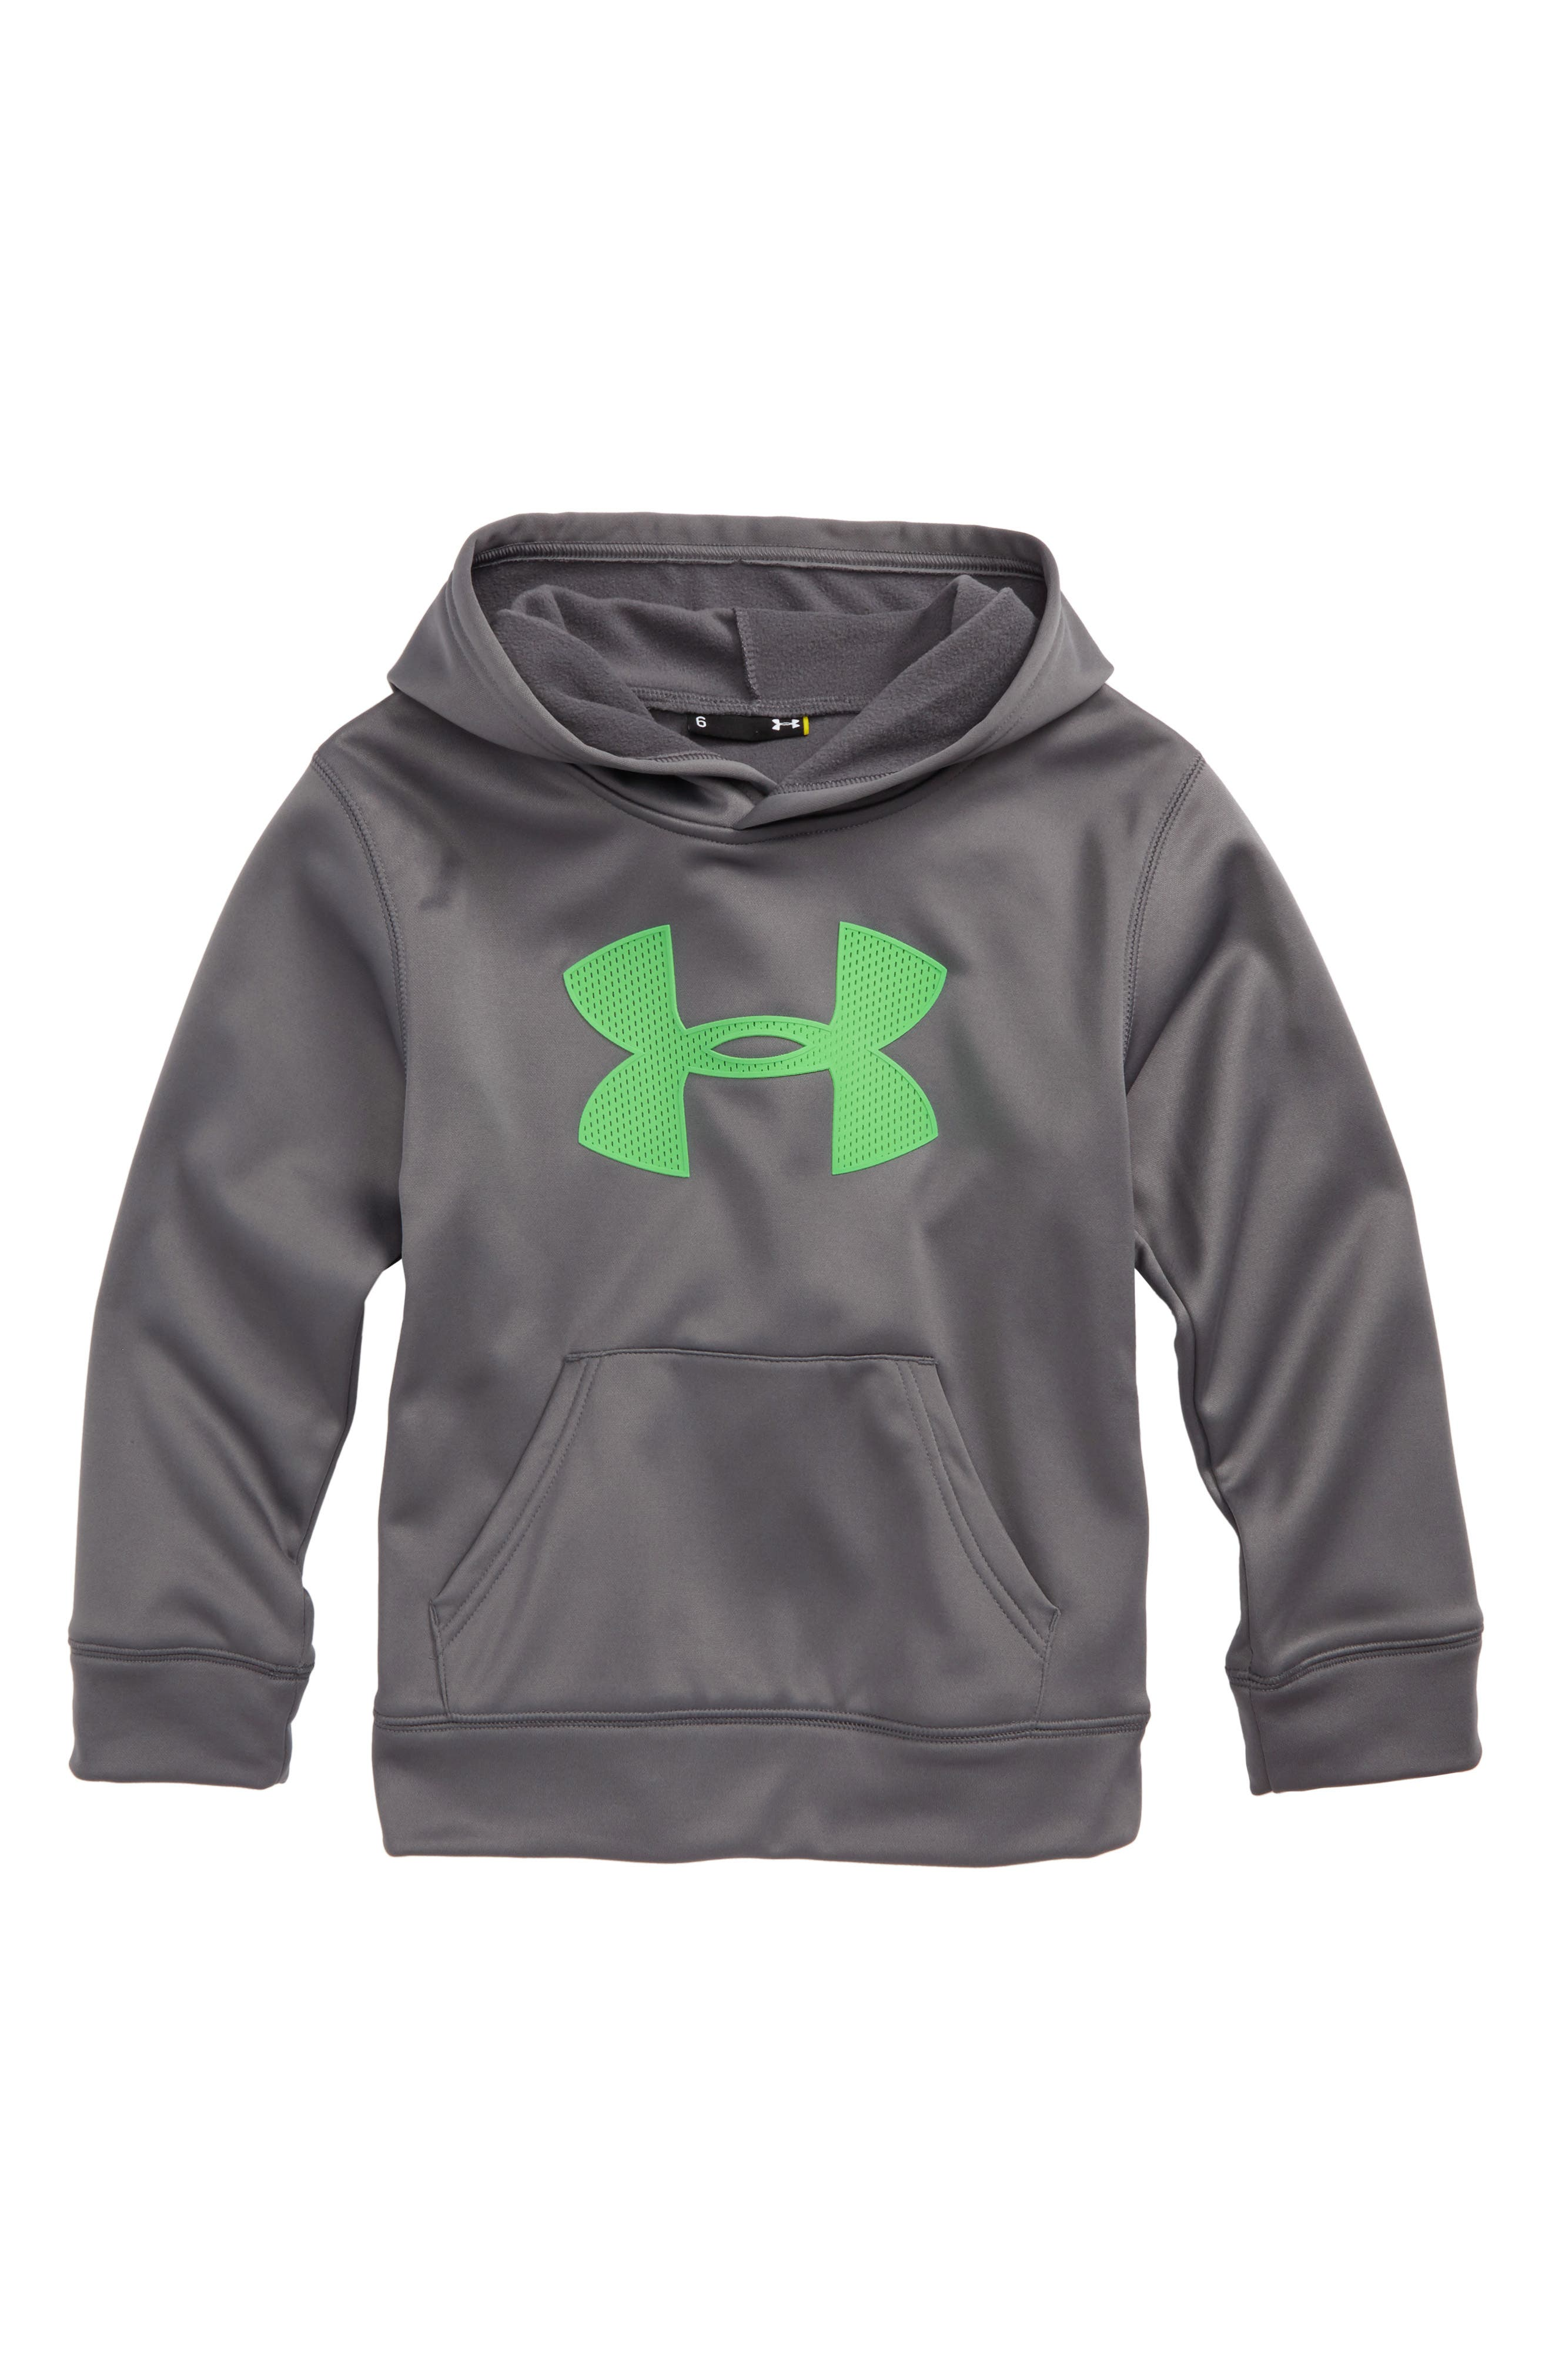 Main Image - Under Armour Mesh Big Logo Pullover Hoodie (Little Boys)